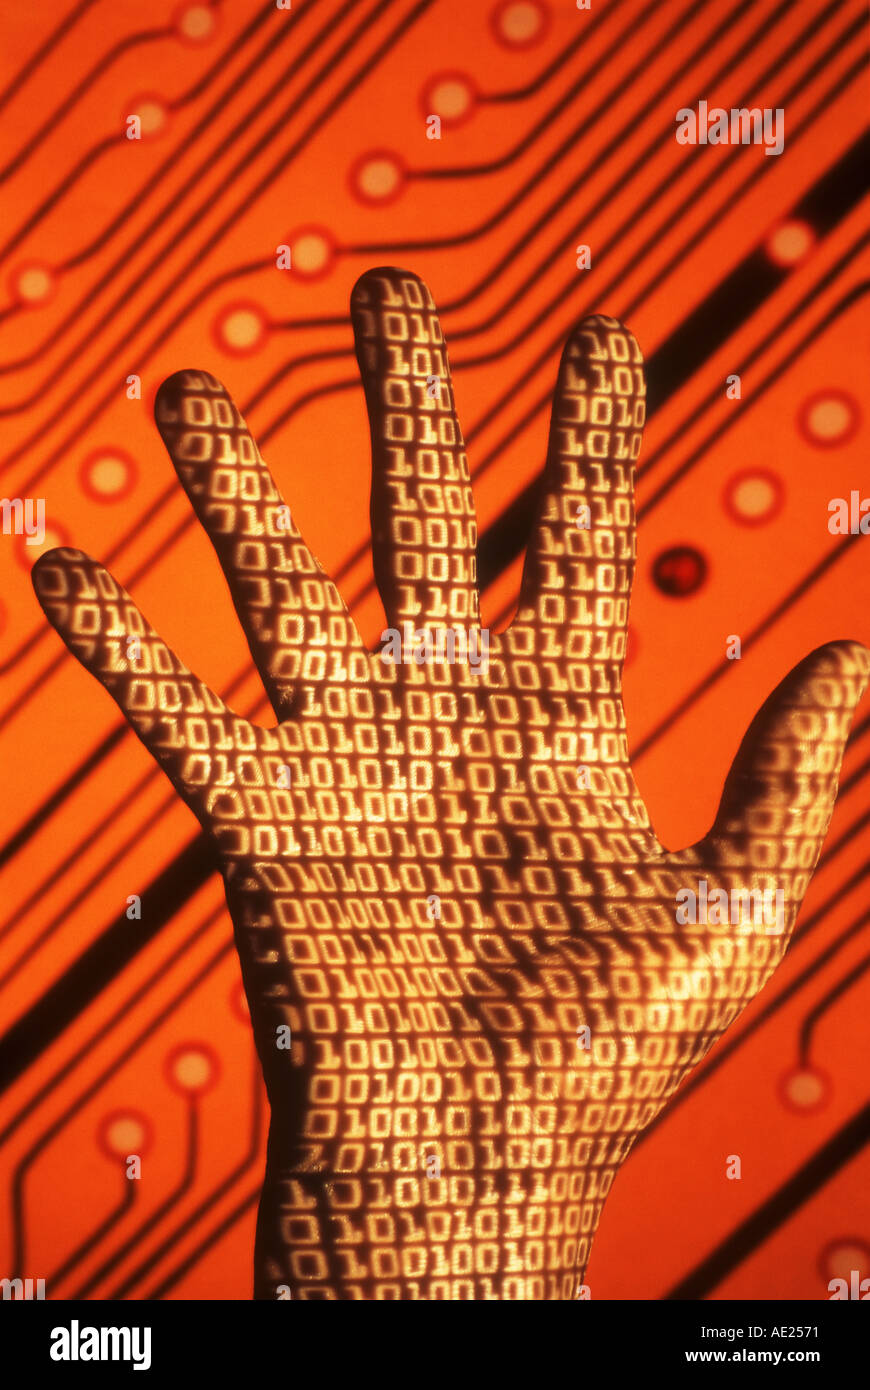 Binary Code Stock Photos Images Alamy On Circuit Board Projected Hand In Front Of Abstract Image